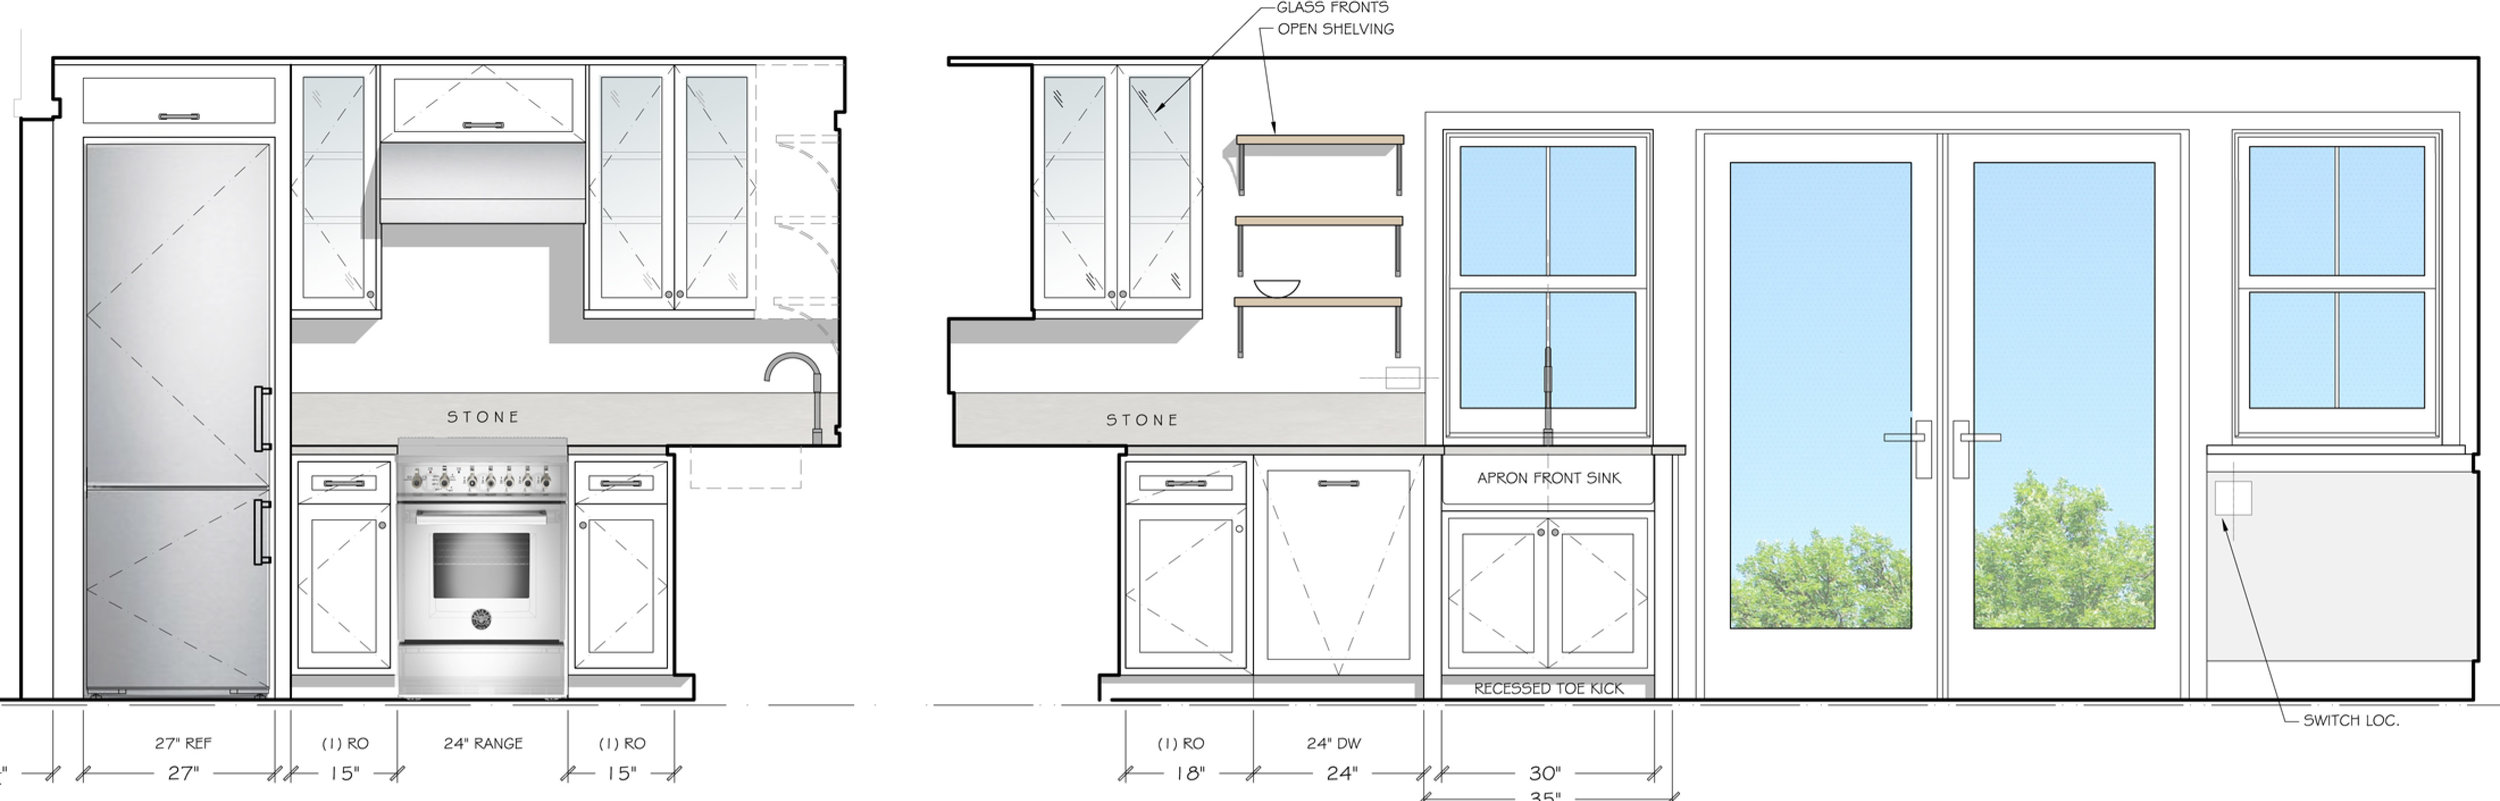 O'meara-Kitchen Elevations-09 16 15.jpg